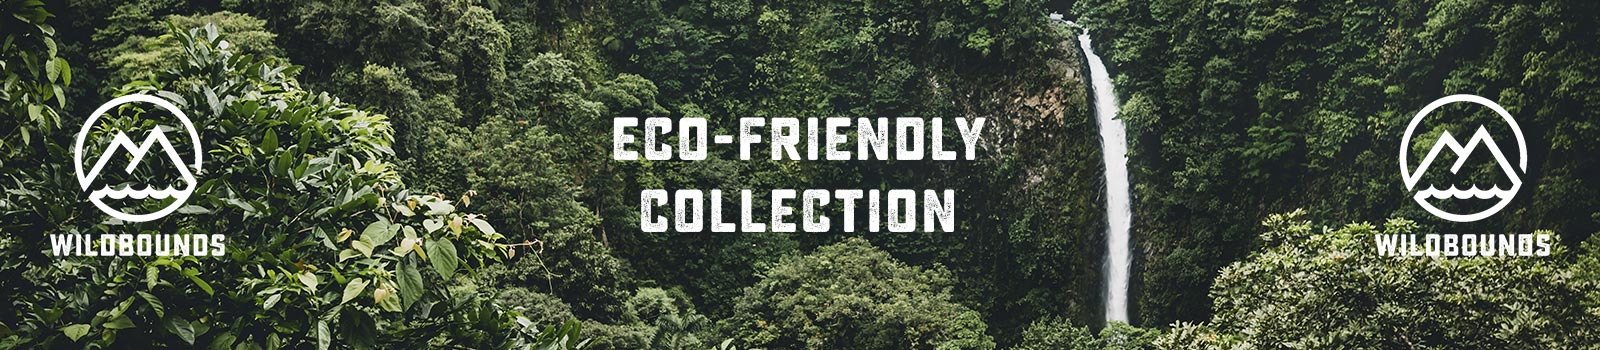 WildBounds Eco Friendly Collection